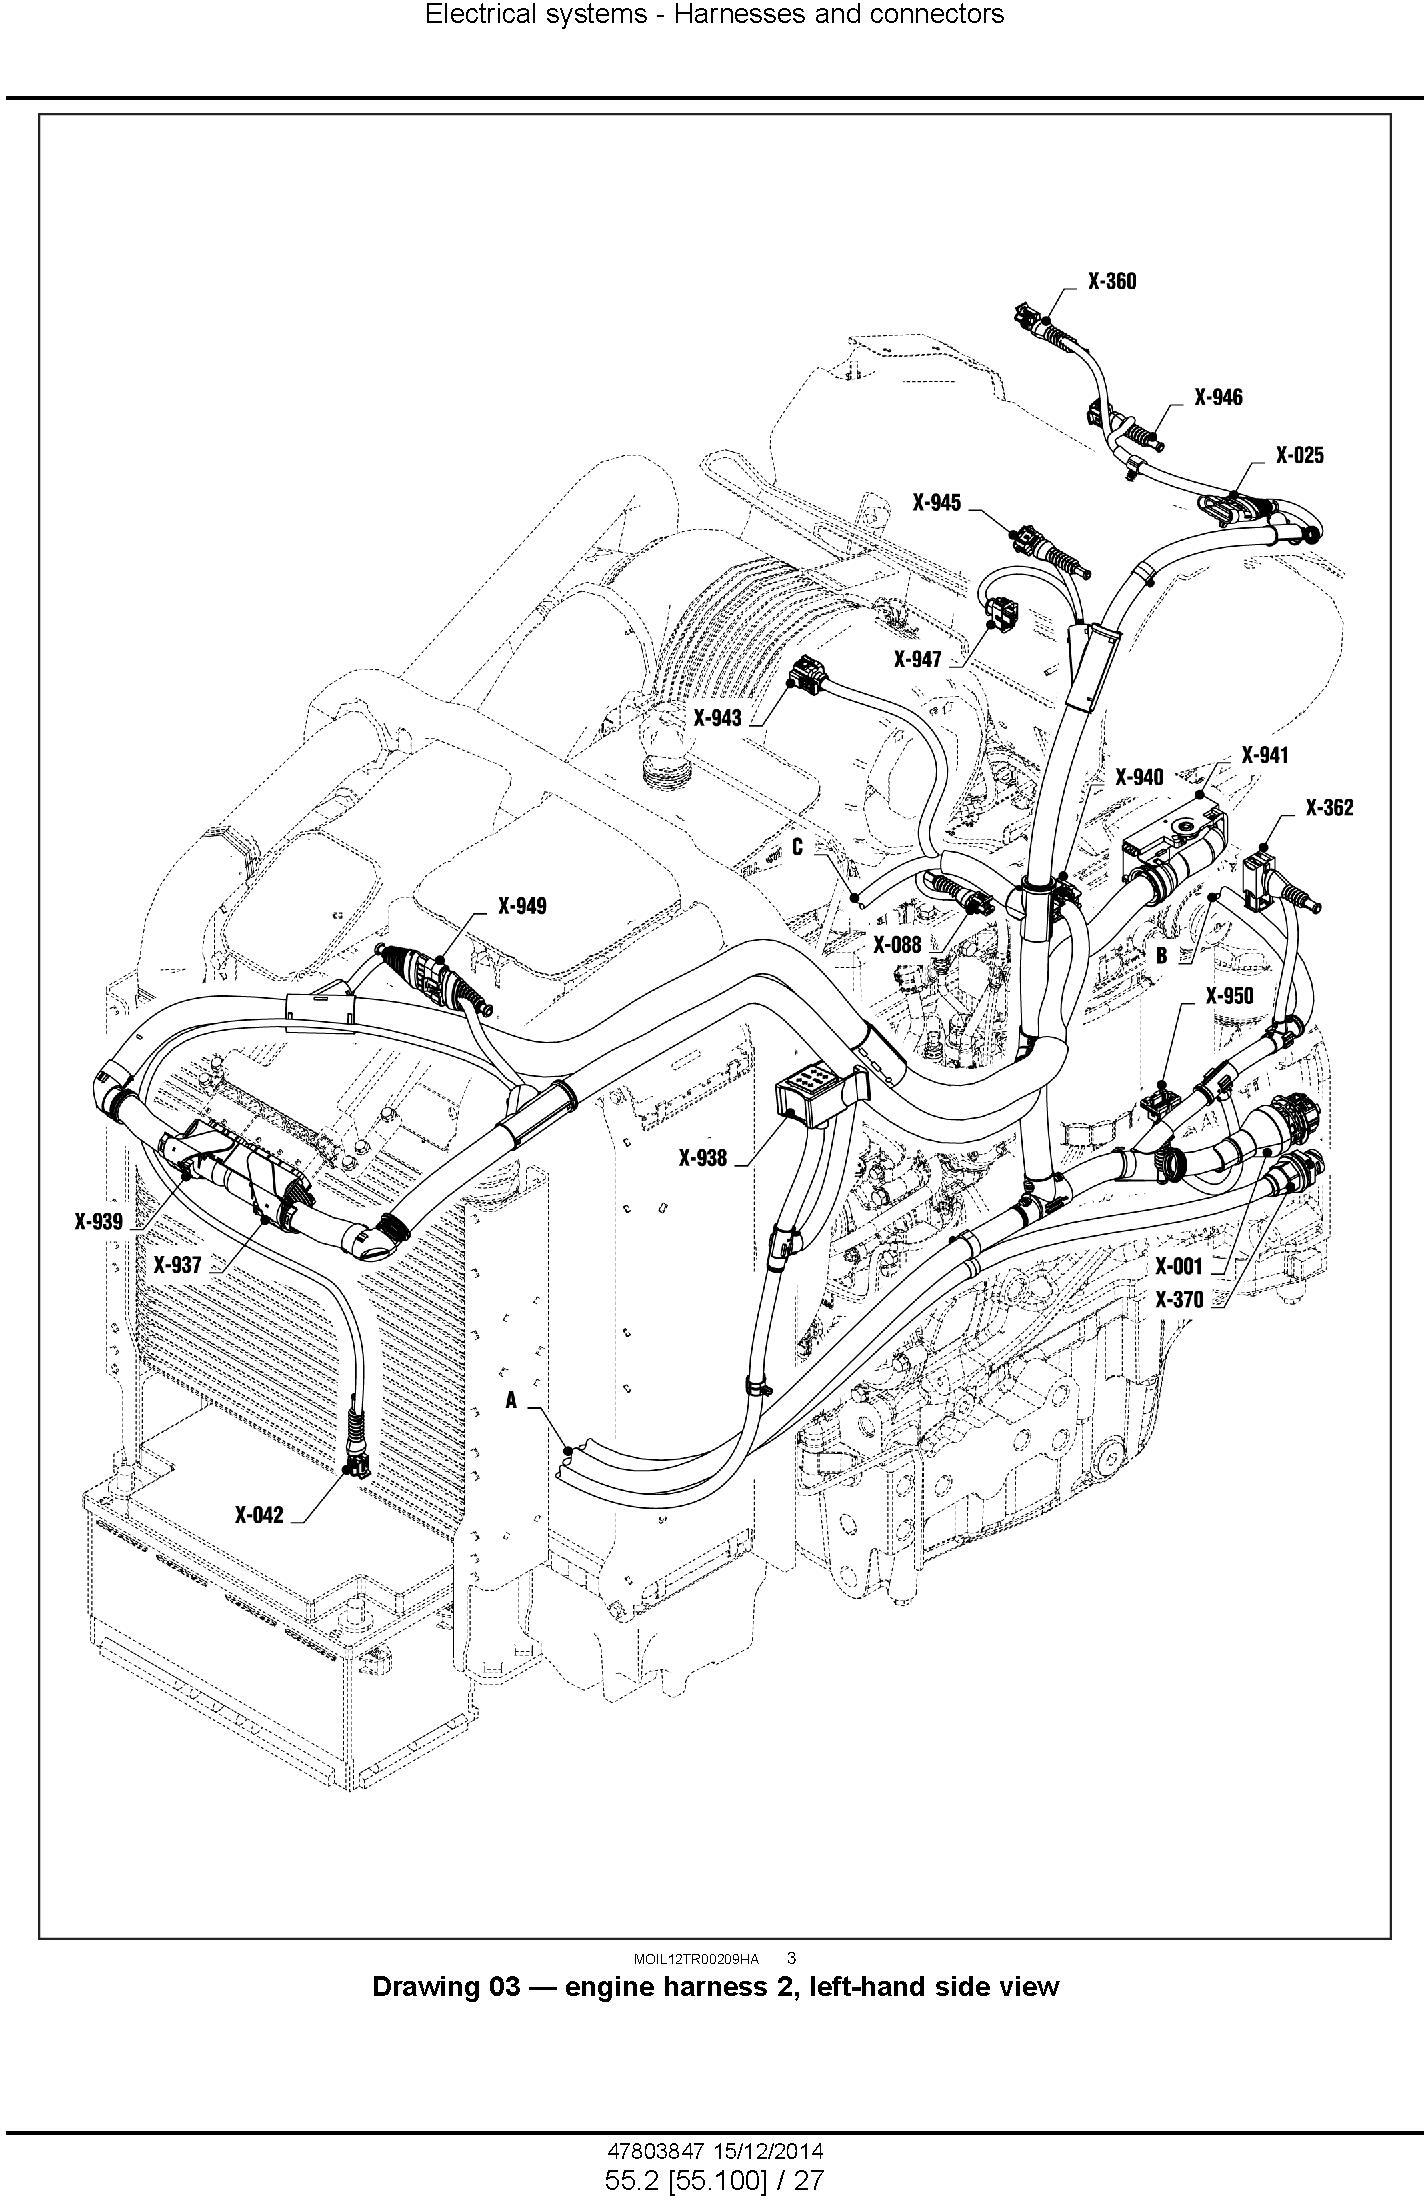 New Holland T4.75, T4.85, T4.95, T4.105, T4.115 Tractor Service Manual - 2